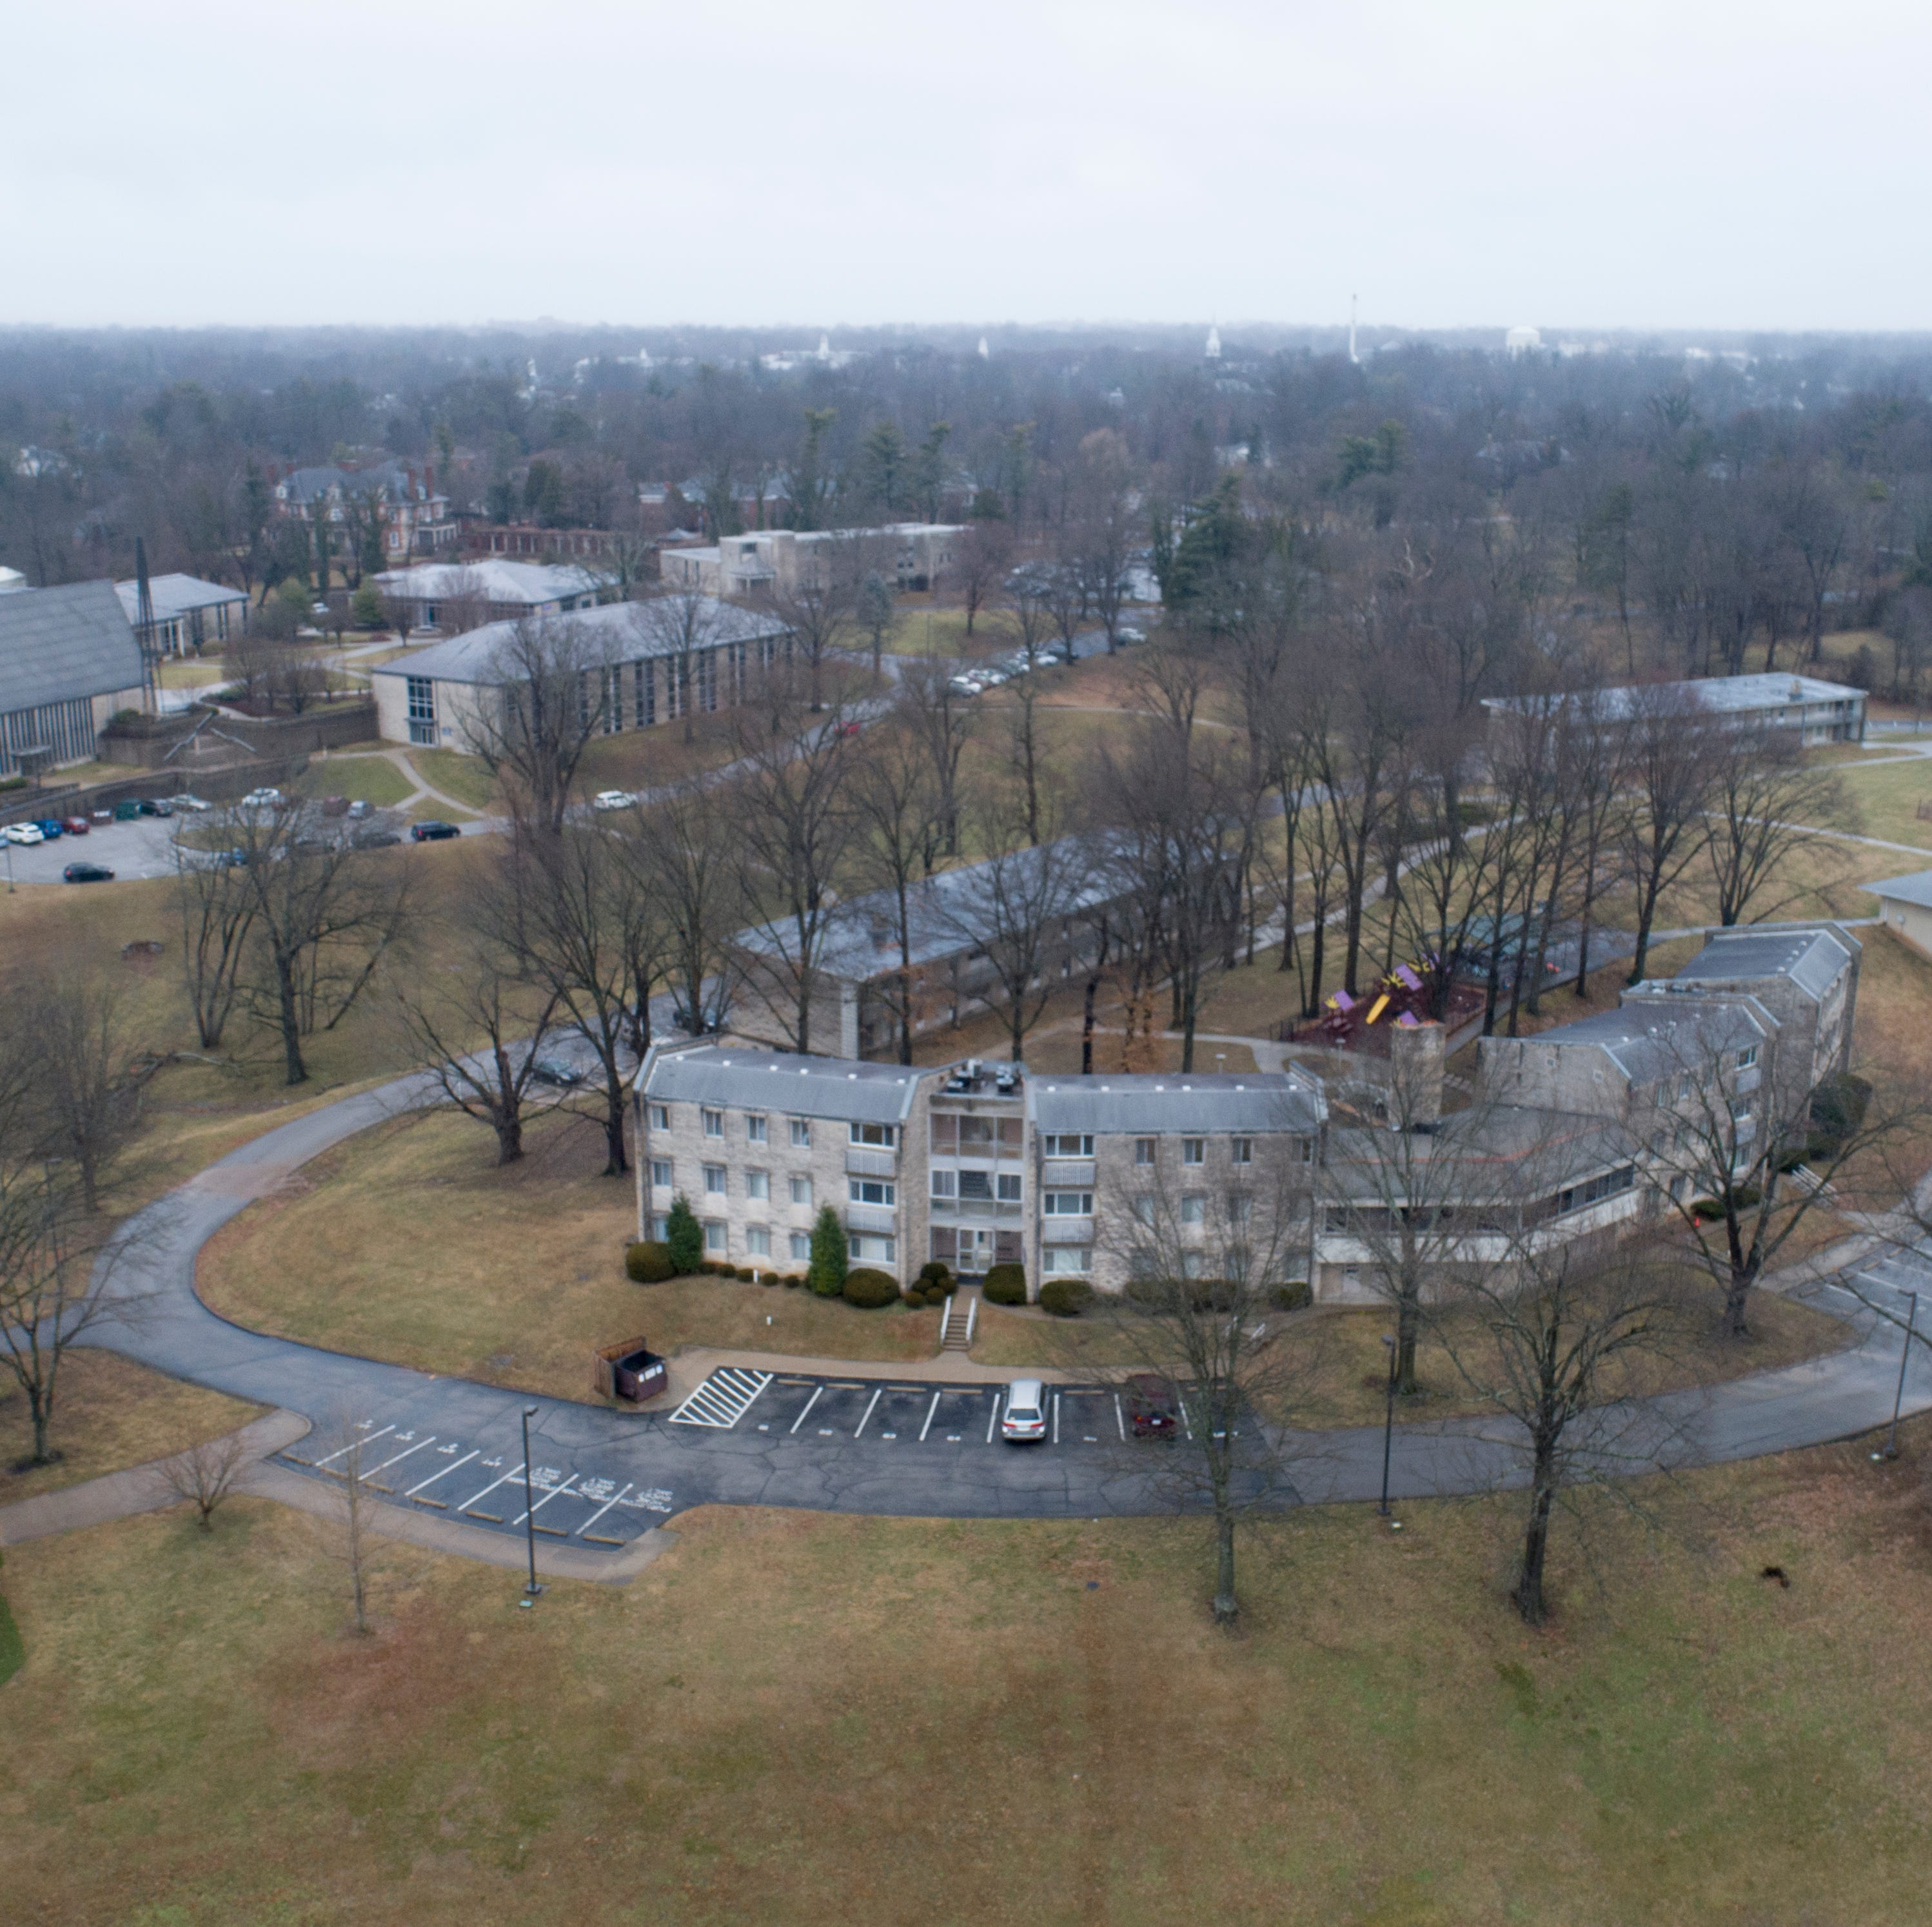 Apartment buildings on the campus of the Presbyterian Seminary sit on land that is being offered for sale.